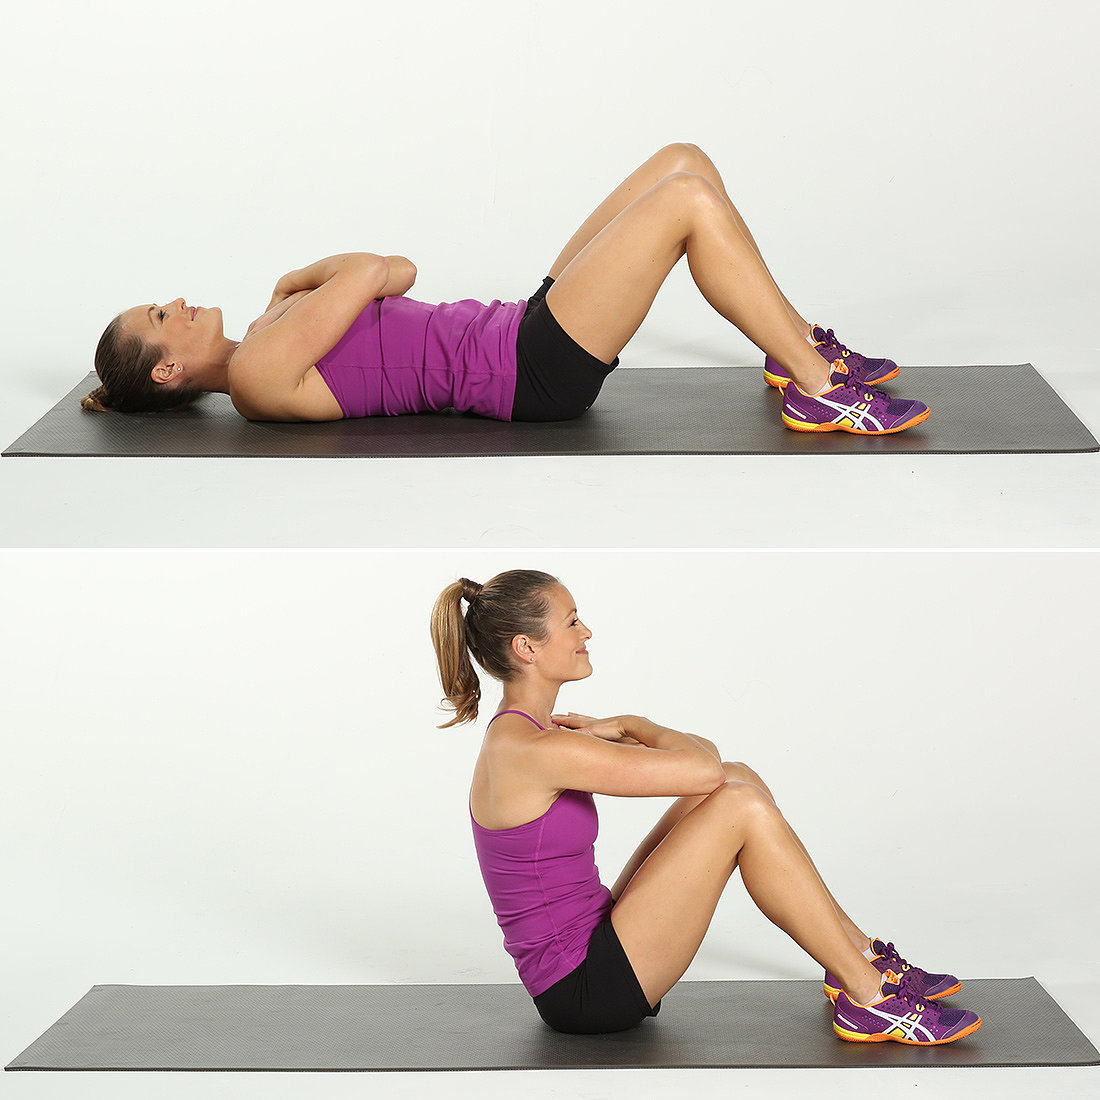 The Sit-Up